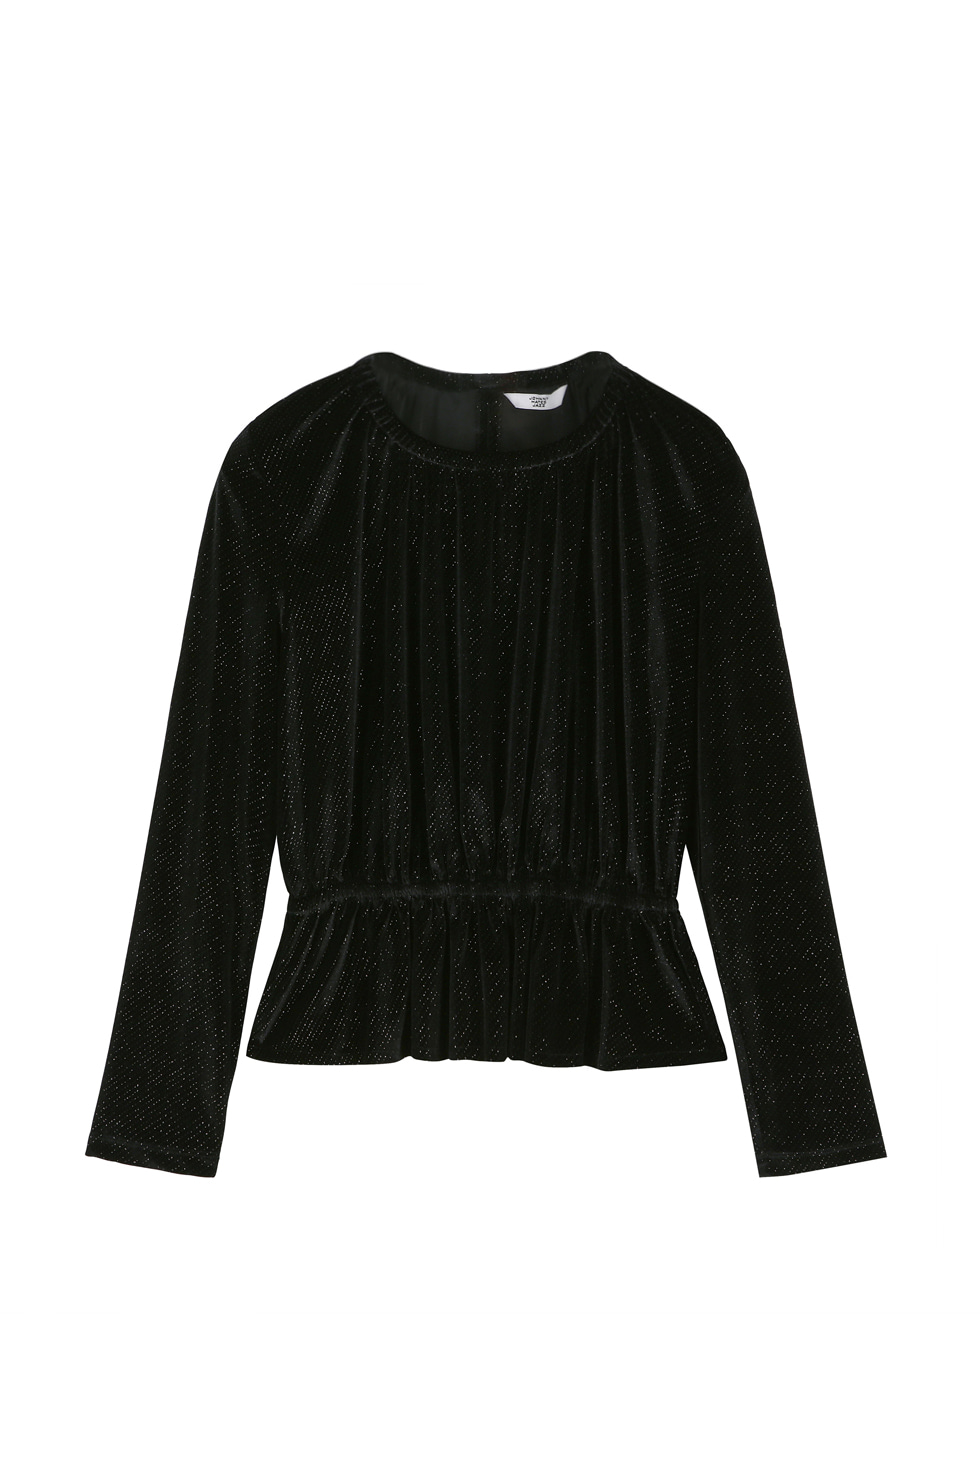 GLITTERED VELVET TOP -BLACK